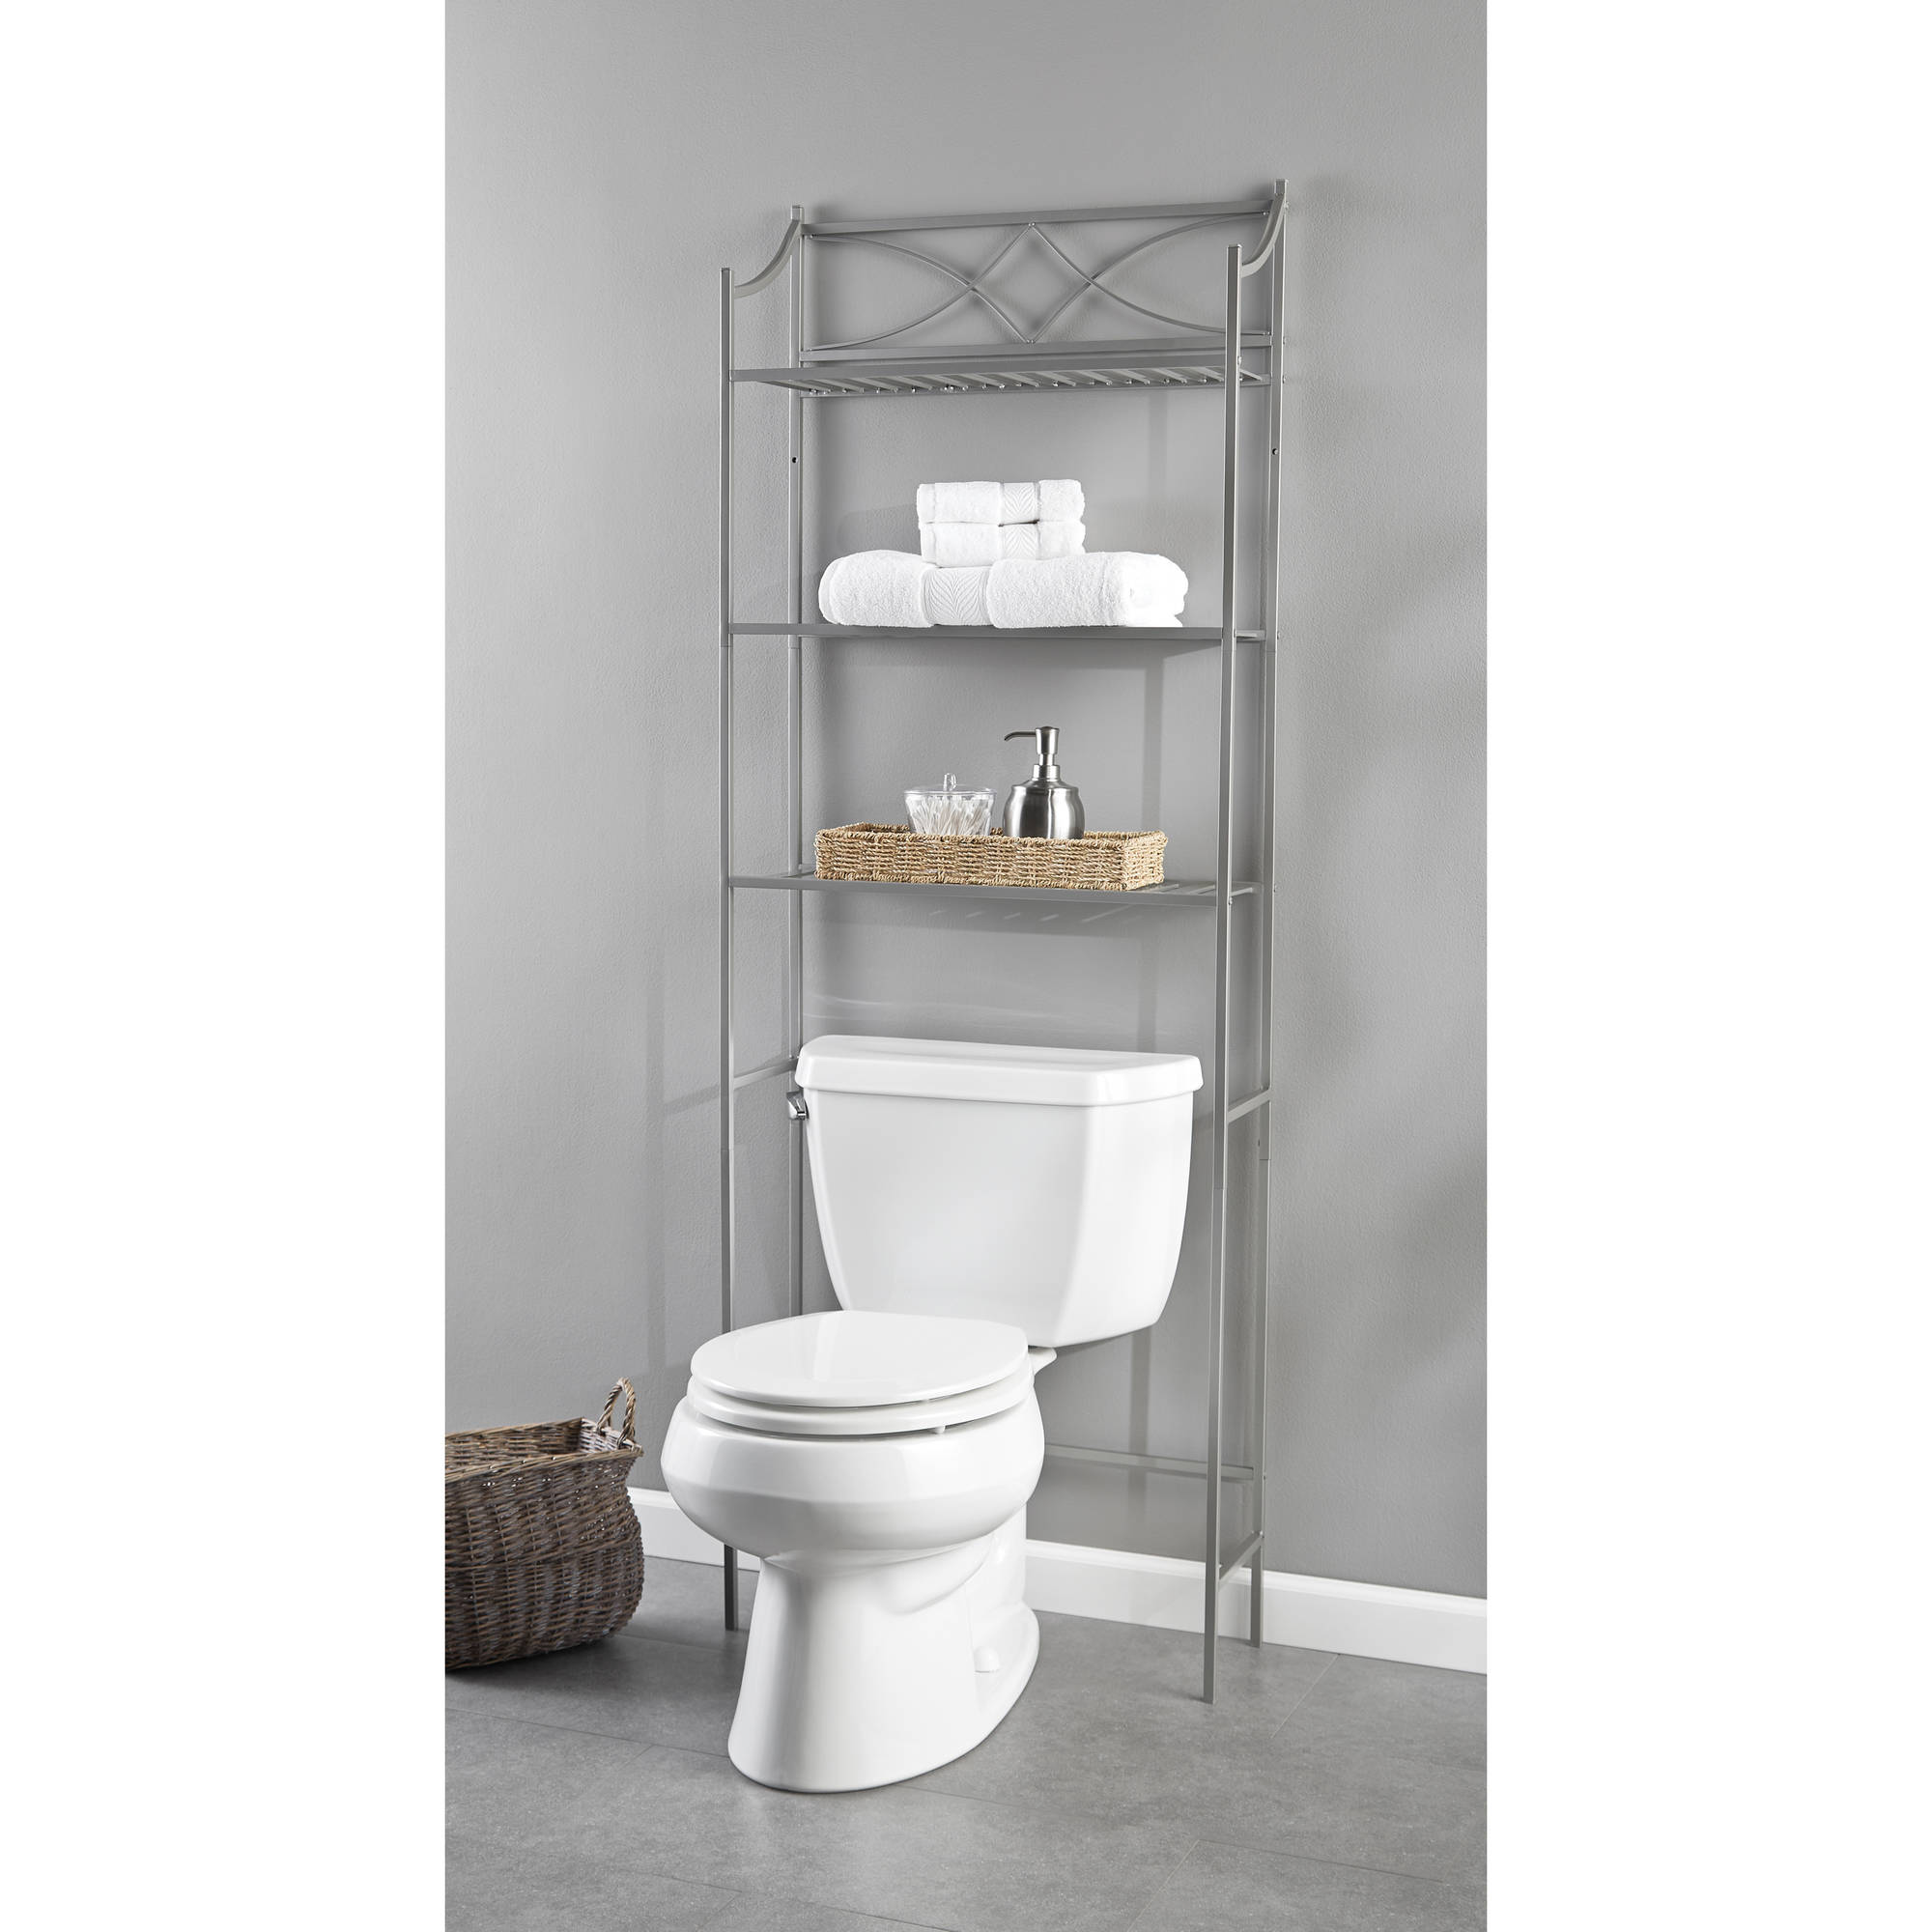 Chapter Lexington Park Bathroom Over-the-Toilet Space Saver, Satin Nickel